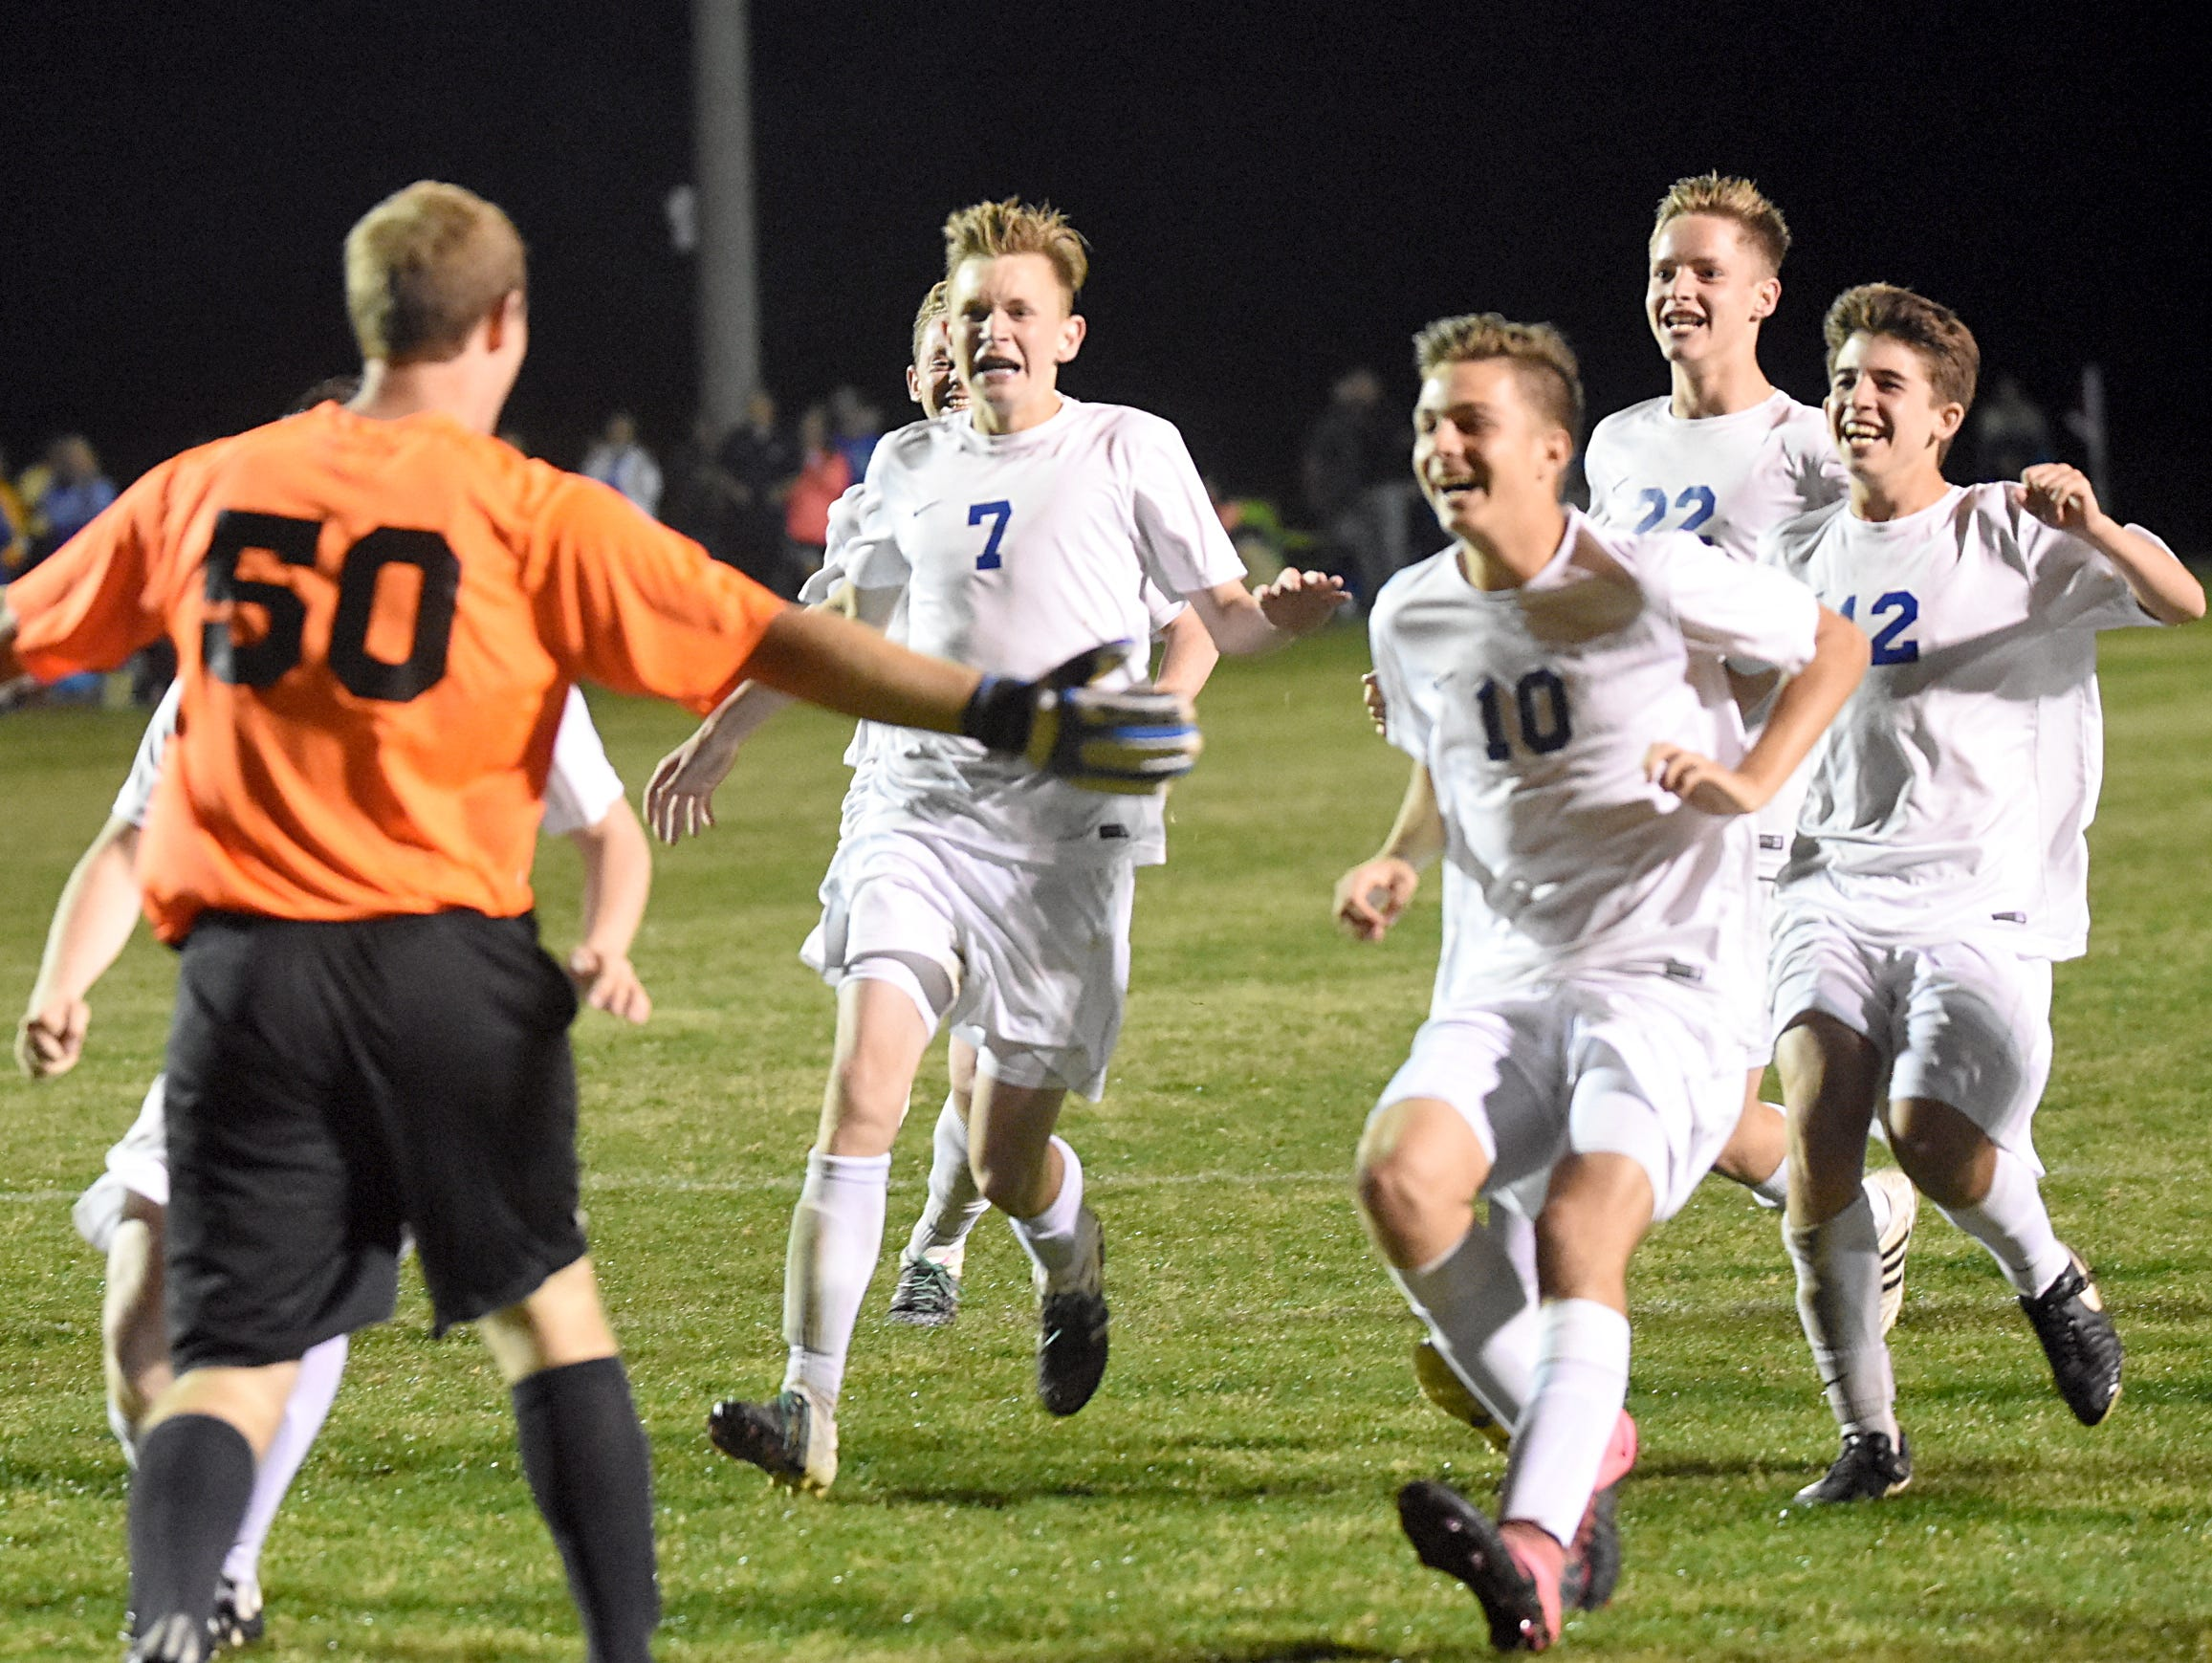 The White House High players run on to the field to celebrate with senior goalkeeper Logan Trimmer (50) after the Blue Devils defeated White House Heritage in a penalty-kick shootout in Friday evening's District 9 A-AA Tournament championship match.